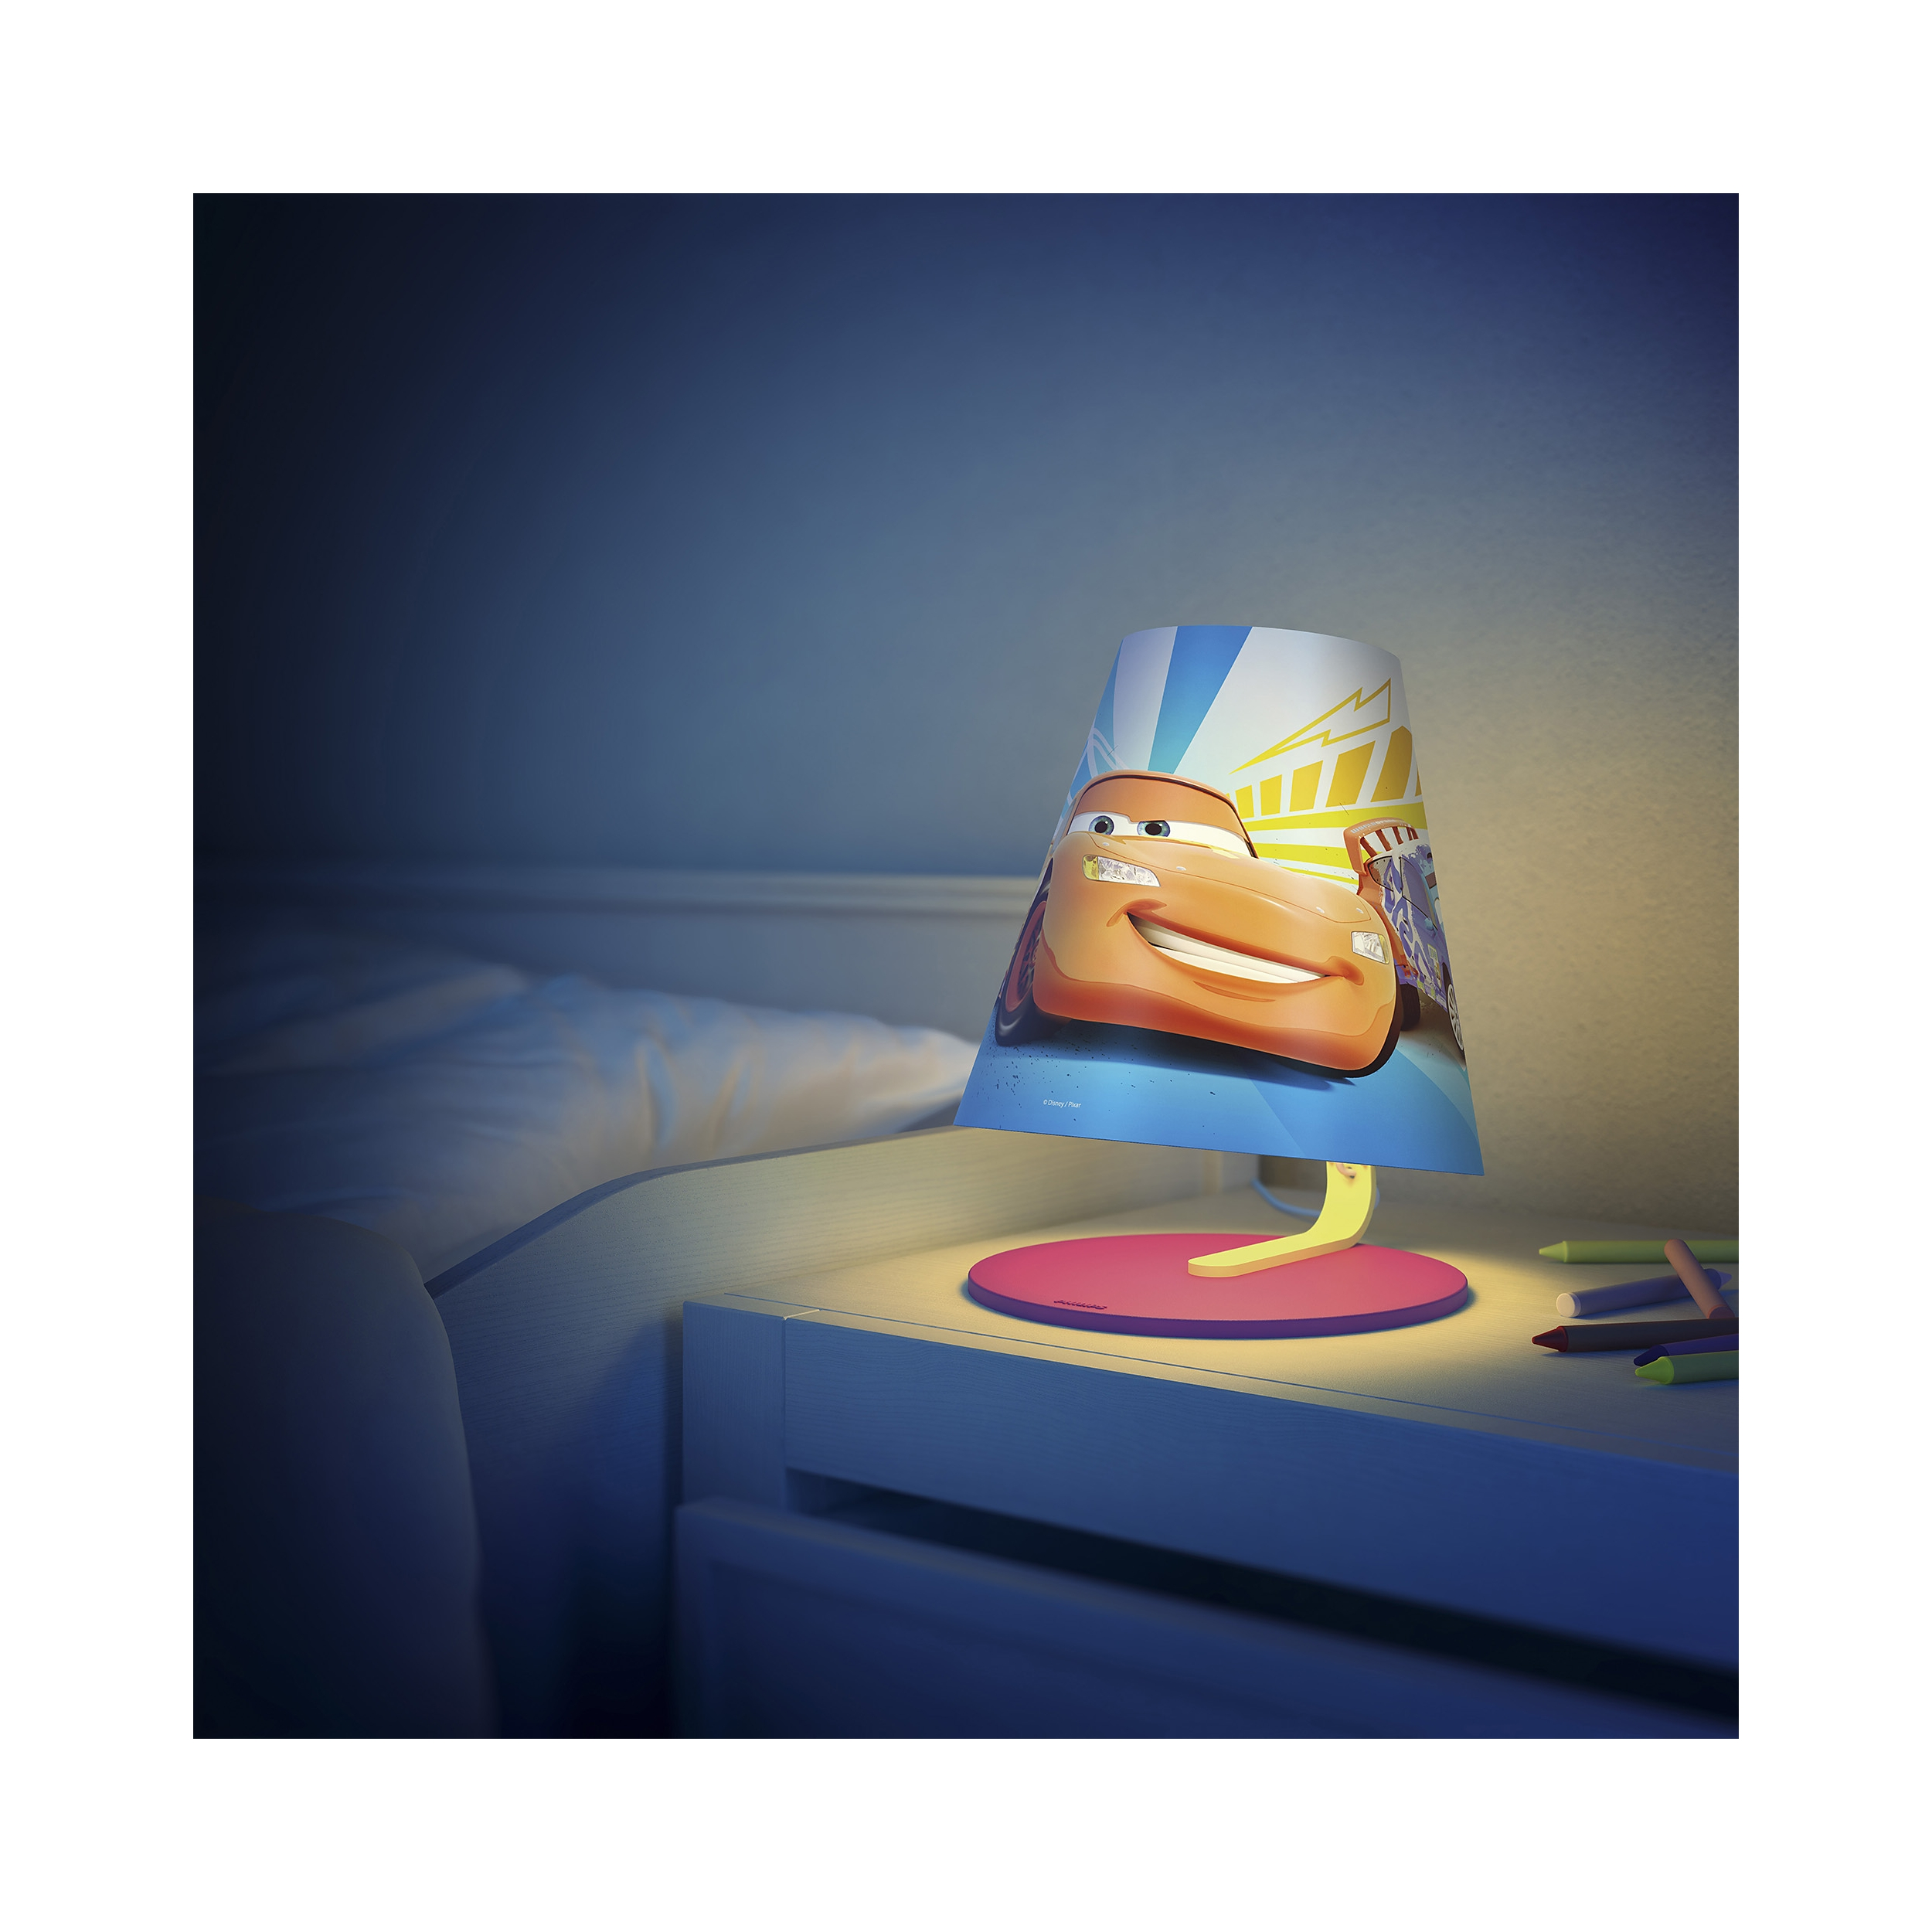 Led Lampe Kinderzimmer Philips Led Lampe Kinderzimmer Disney Tischleuchte Cars